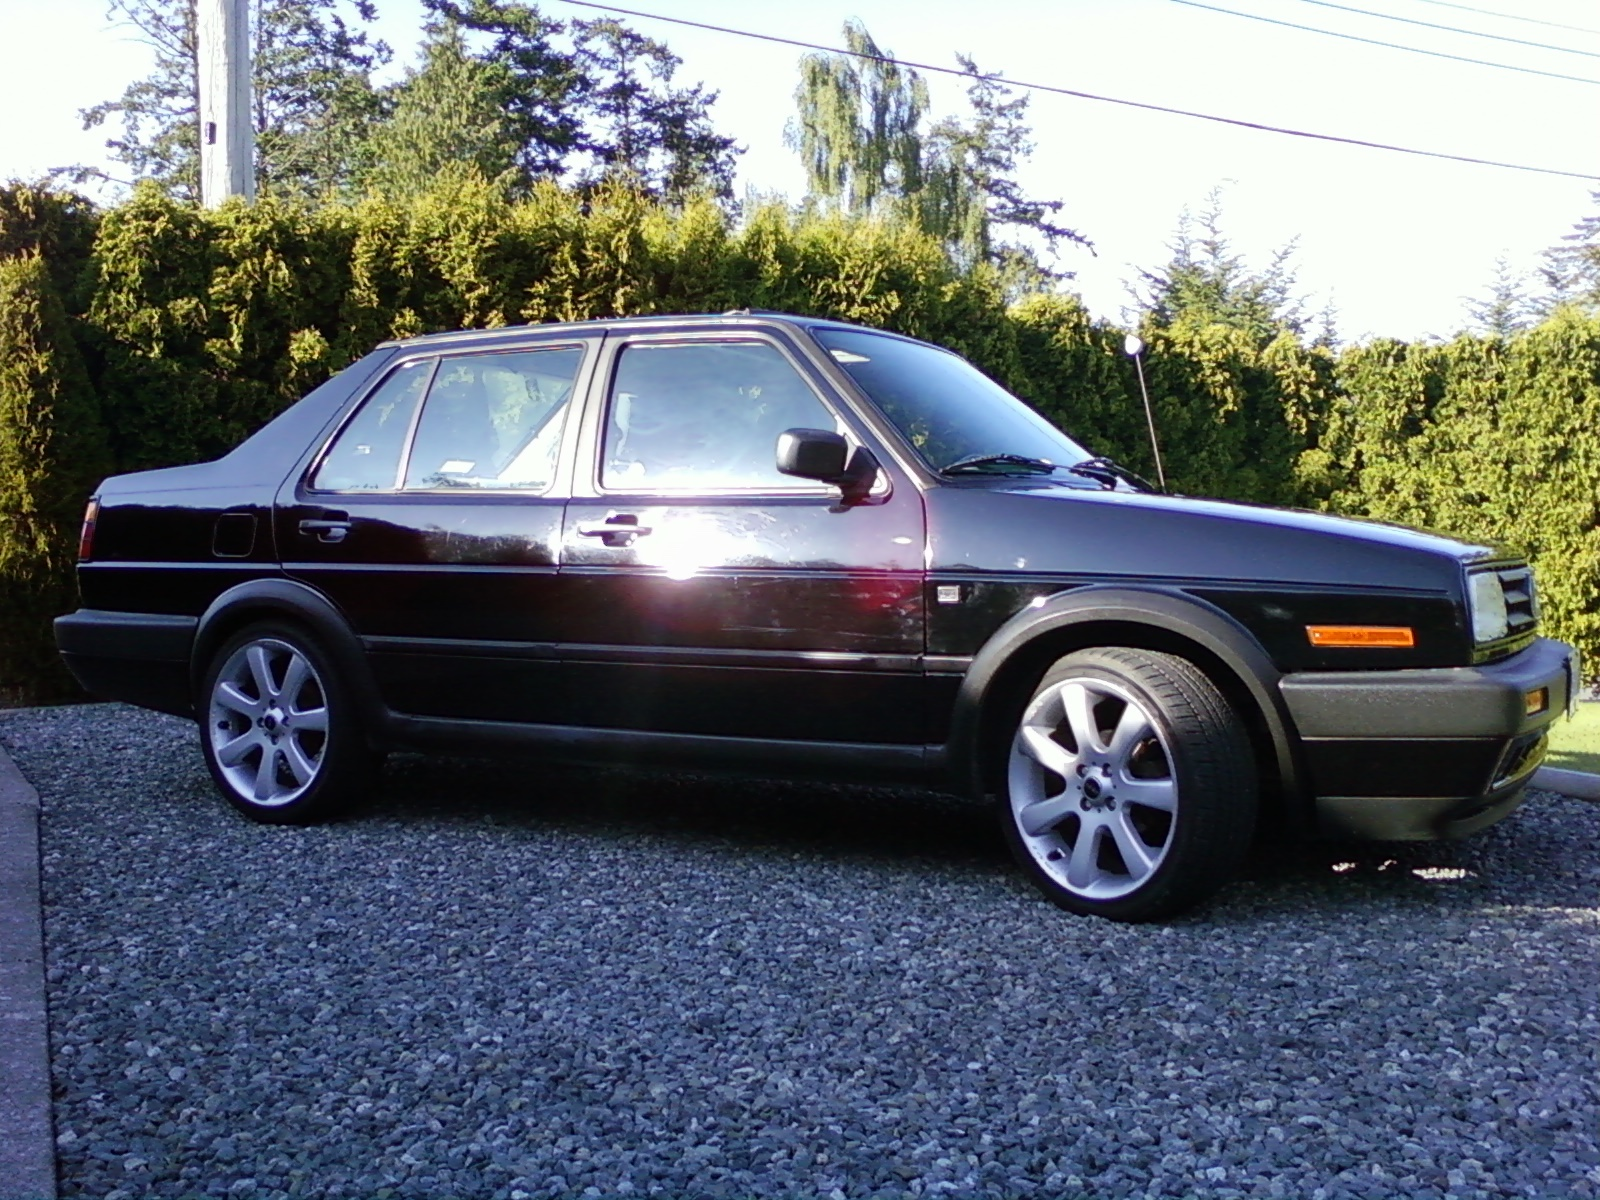 mcrae56 1990 volkswagen jetta specs photos modification. Black Bedroom Furniture Sets. Home Design Ideas